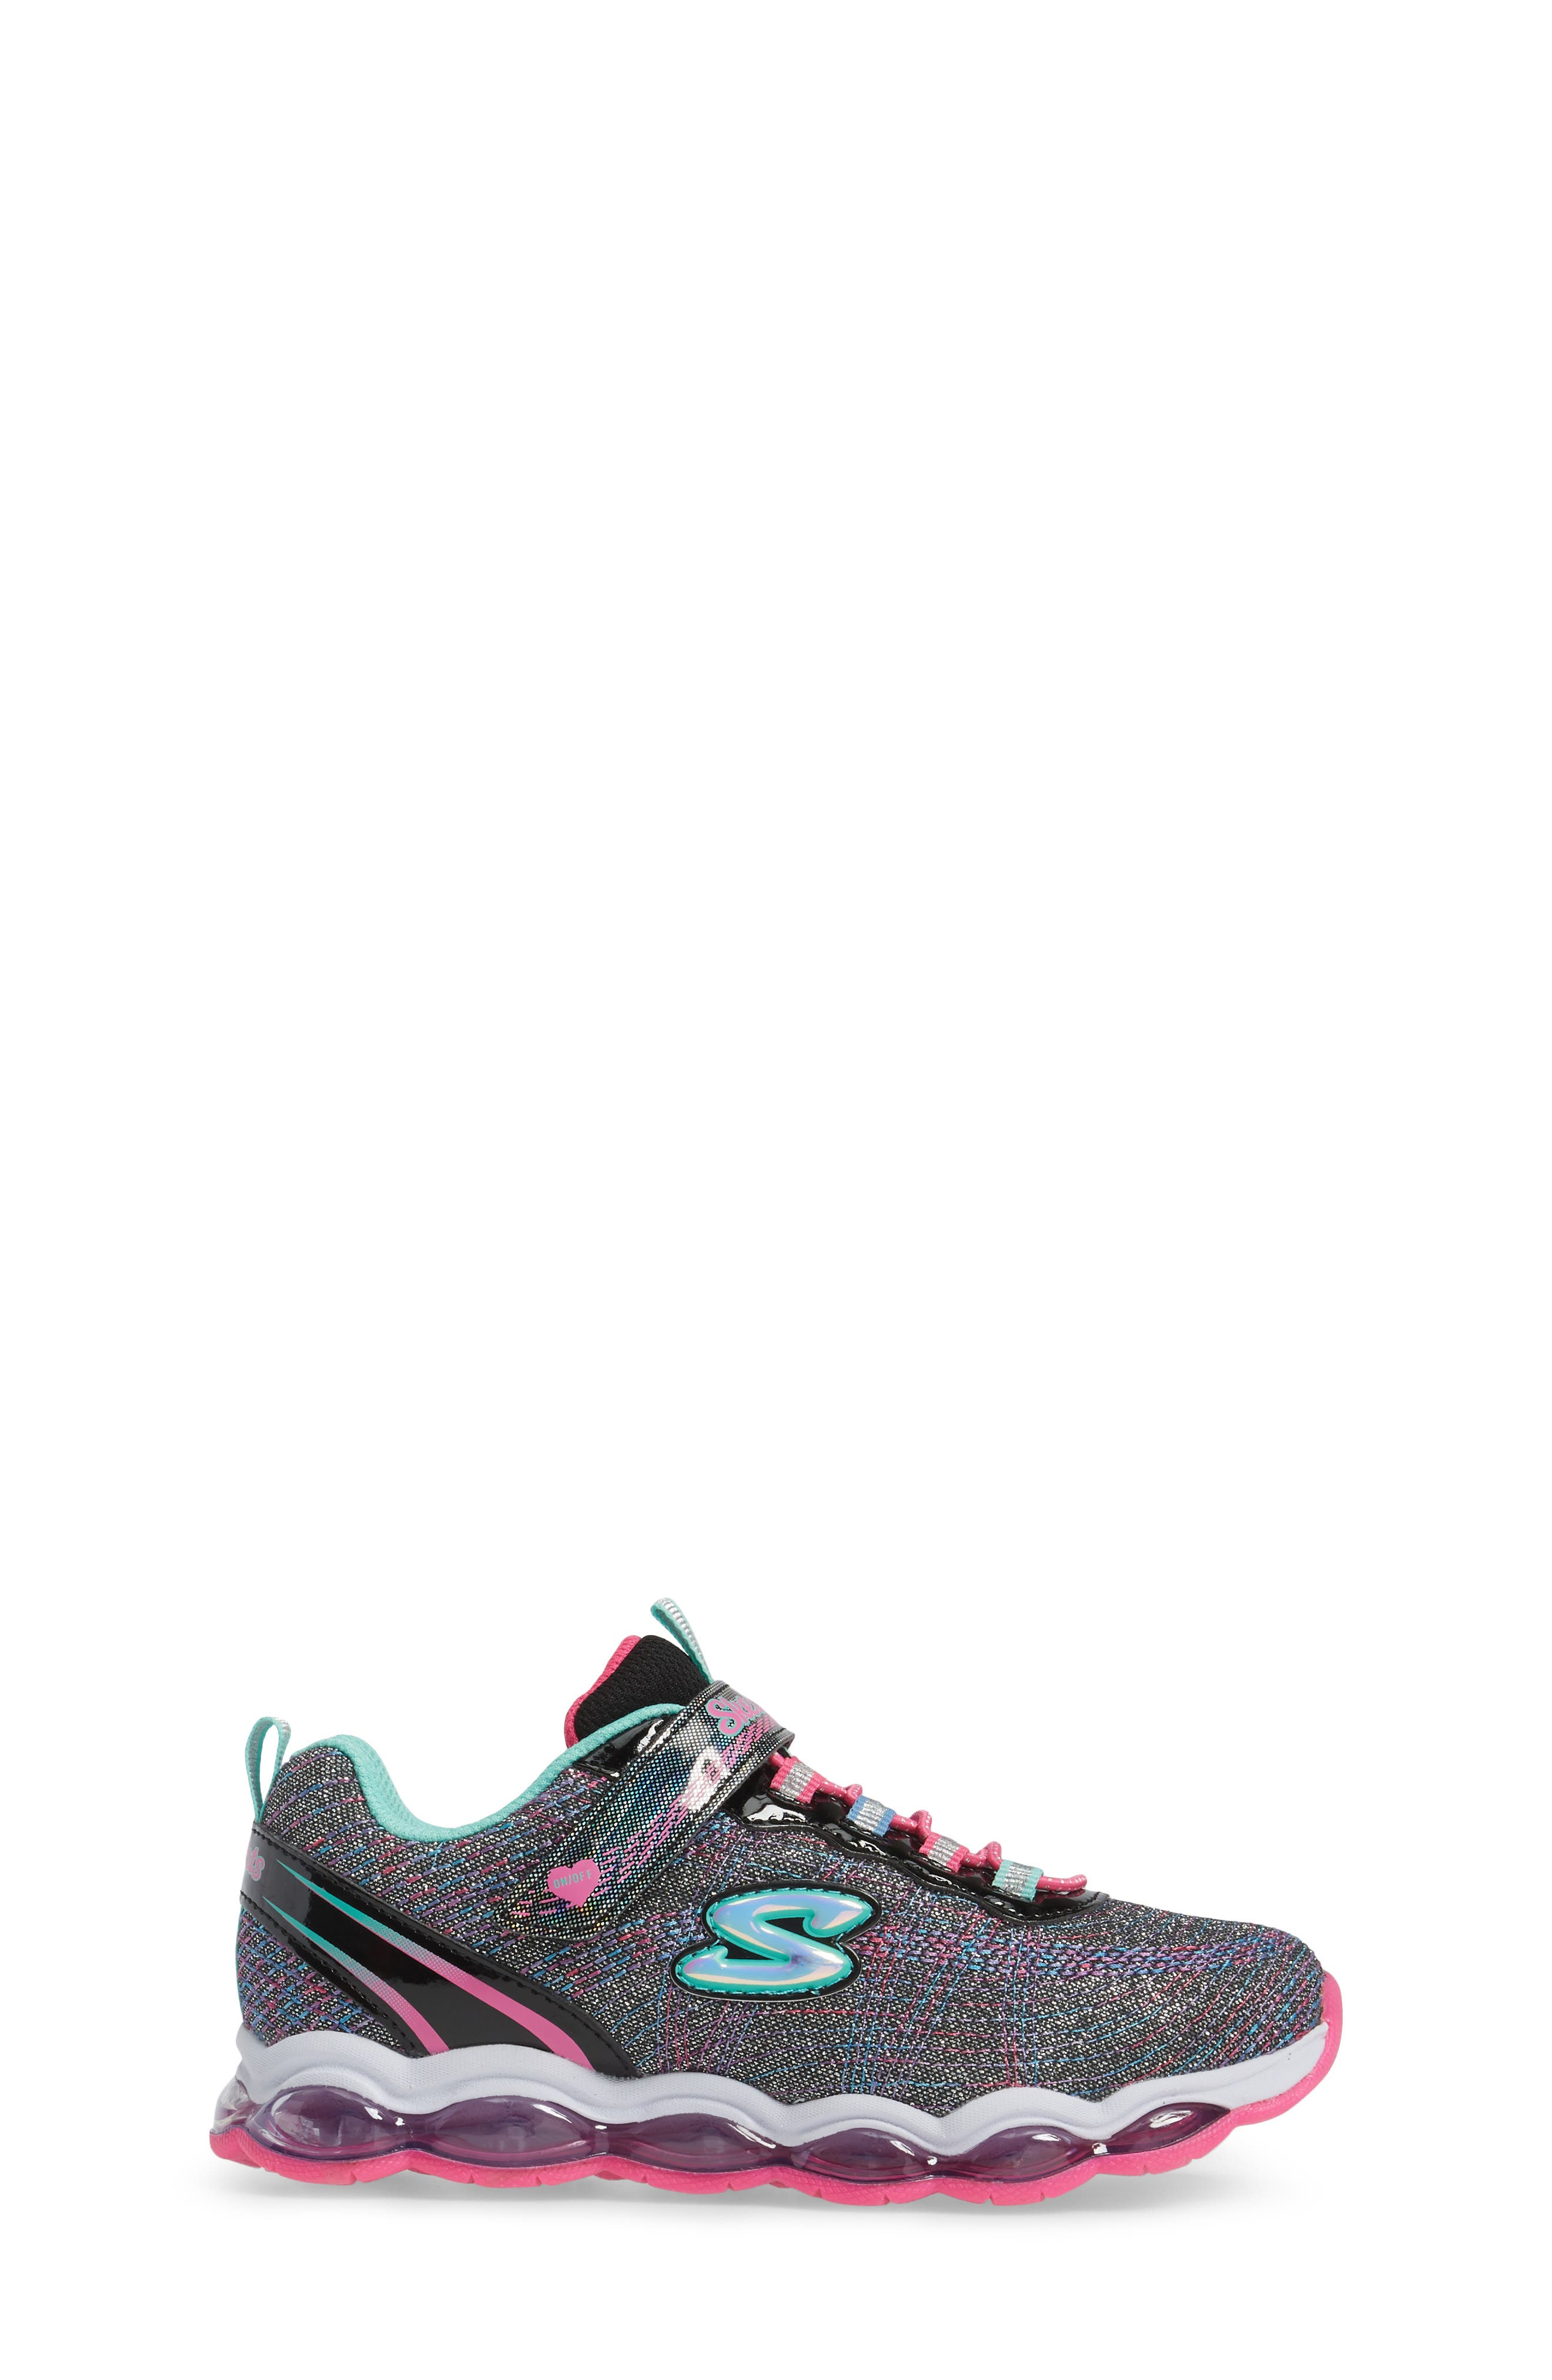 Glimmer Lights Sneakers,                             Alternate thumbnail 3, color,                             001